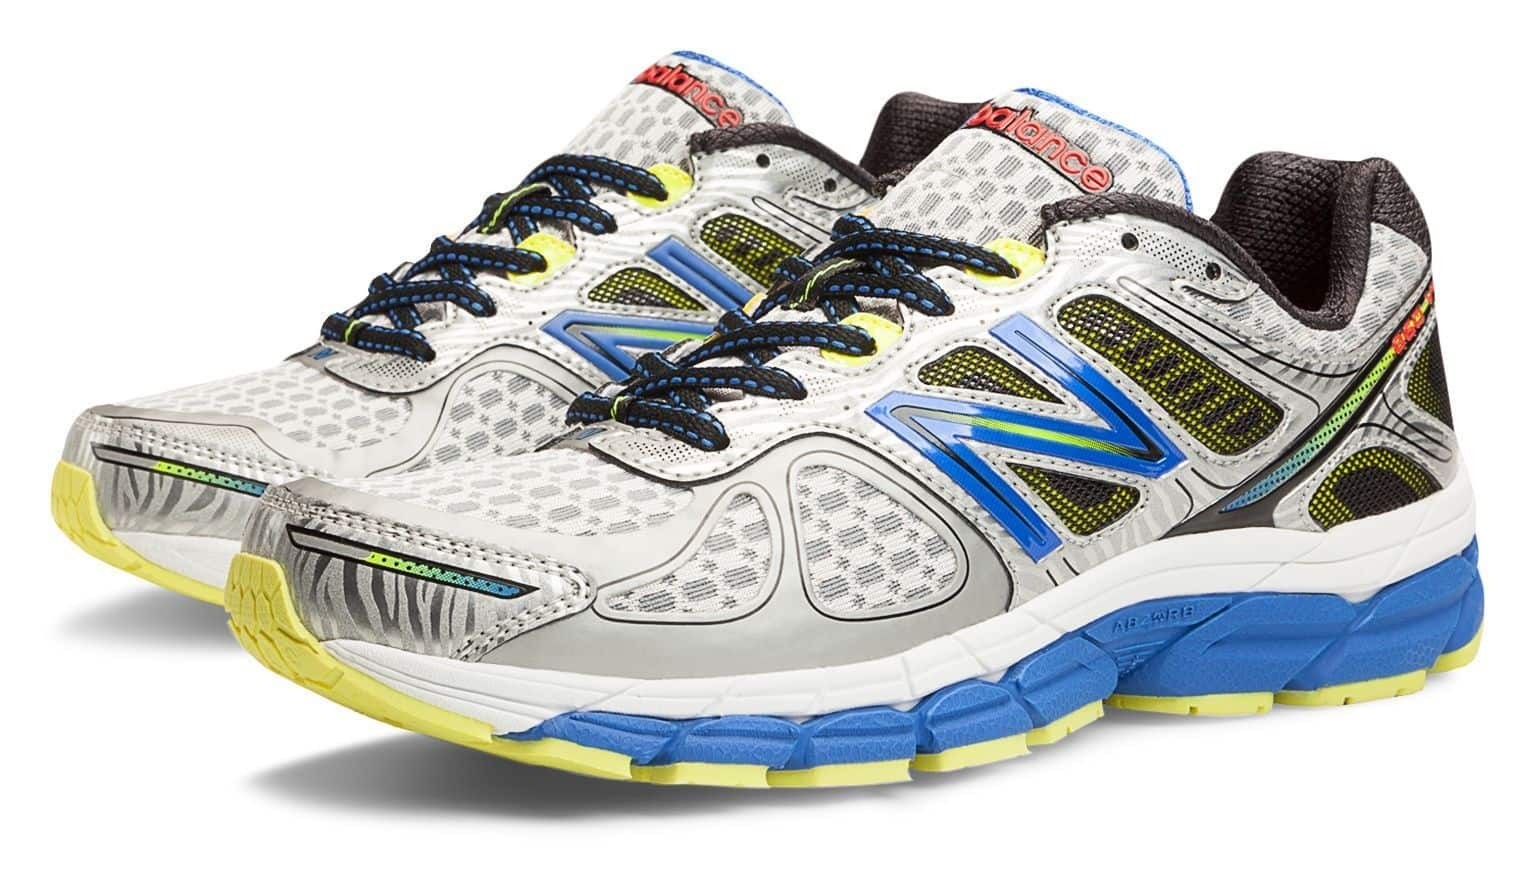 New Balance Mens and Women s 860v4 / 860v4 Stability Running Shoes $35